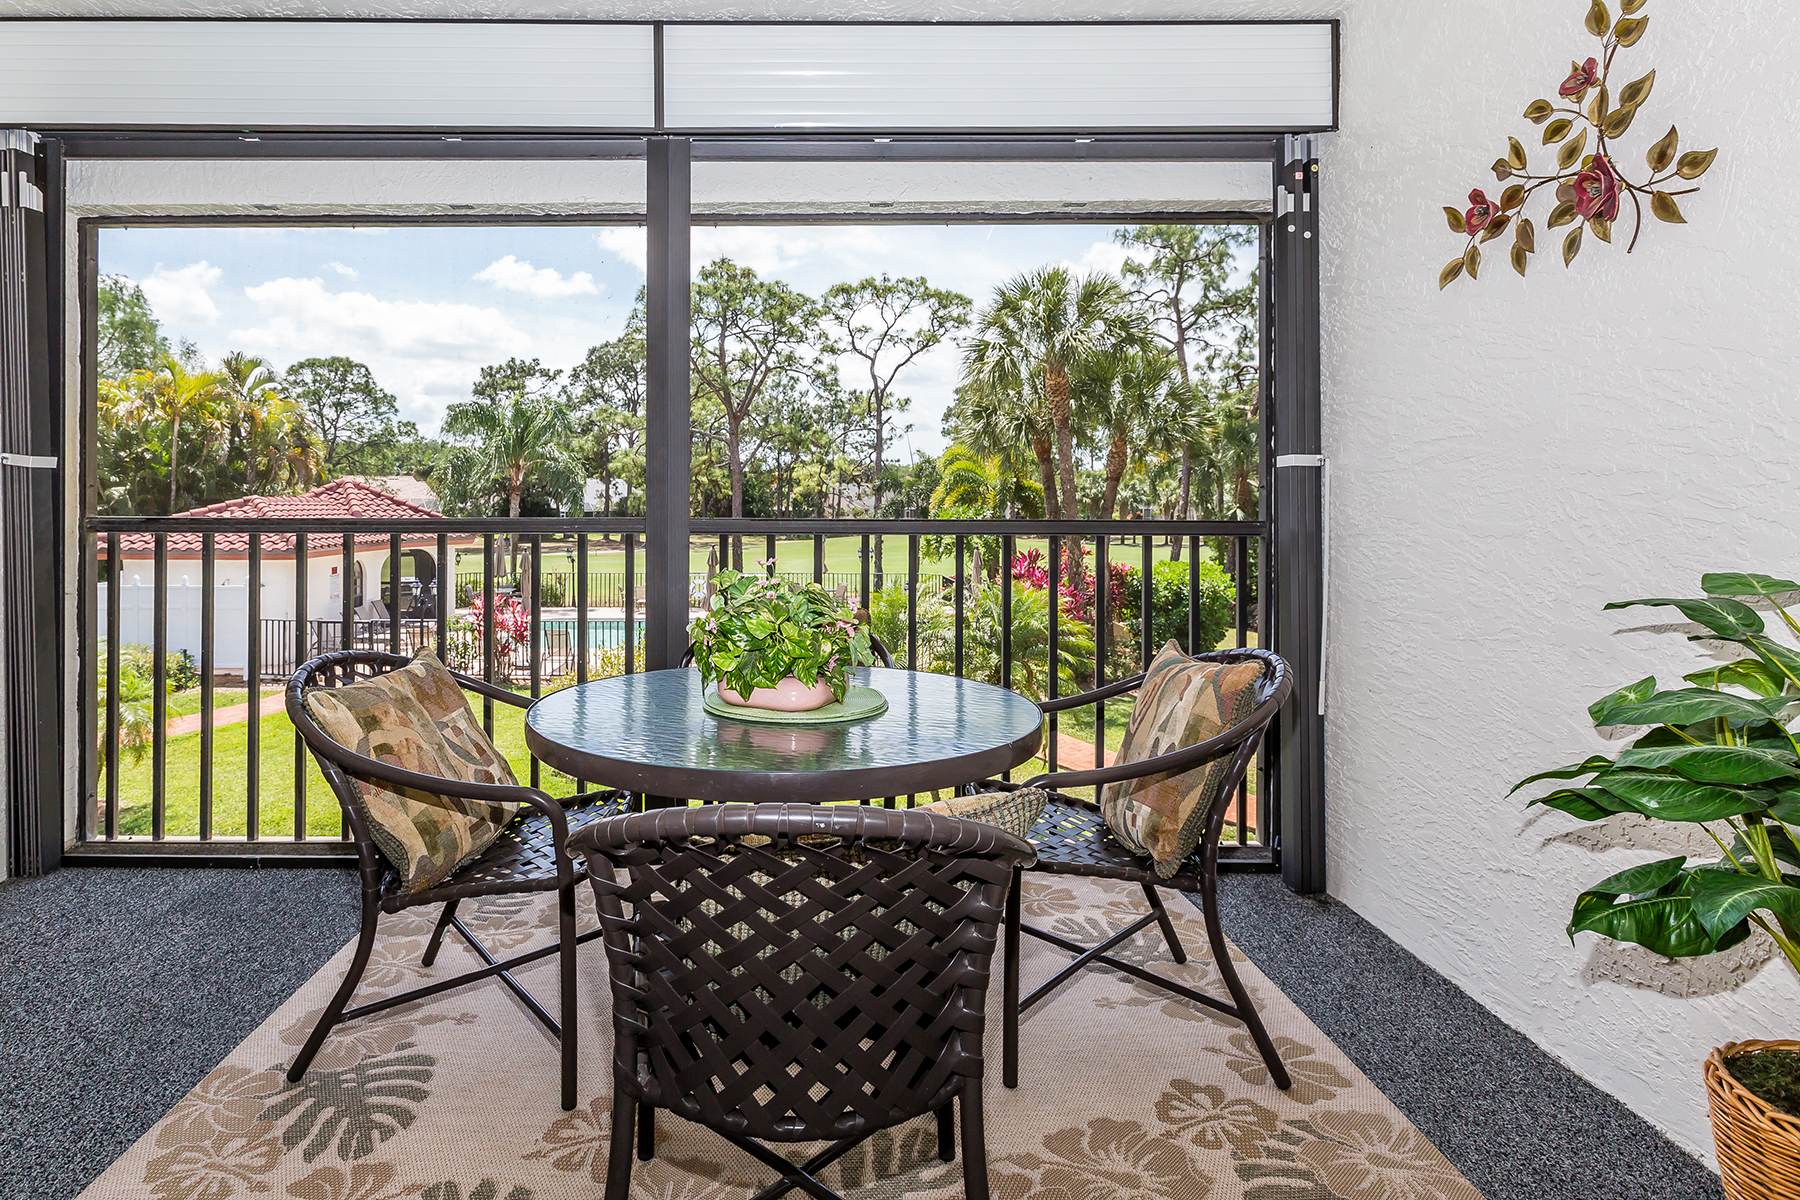 Condominium for Sale at GLEN EAGLE 212 Deerwood Cir 6-7, Naples, Florida 34113 United States